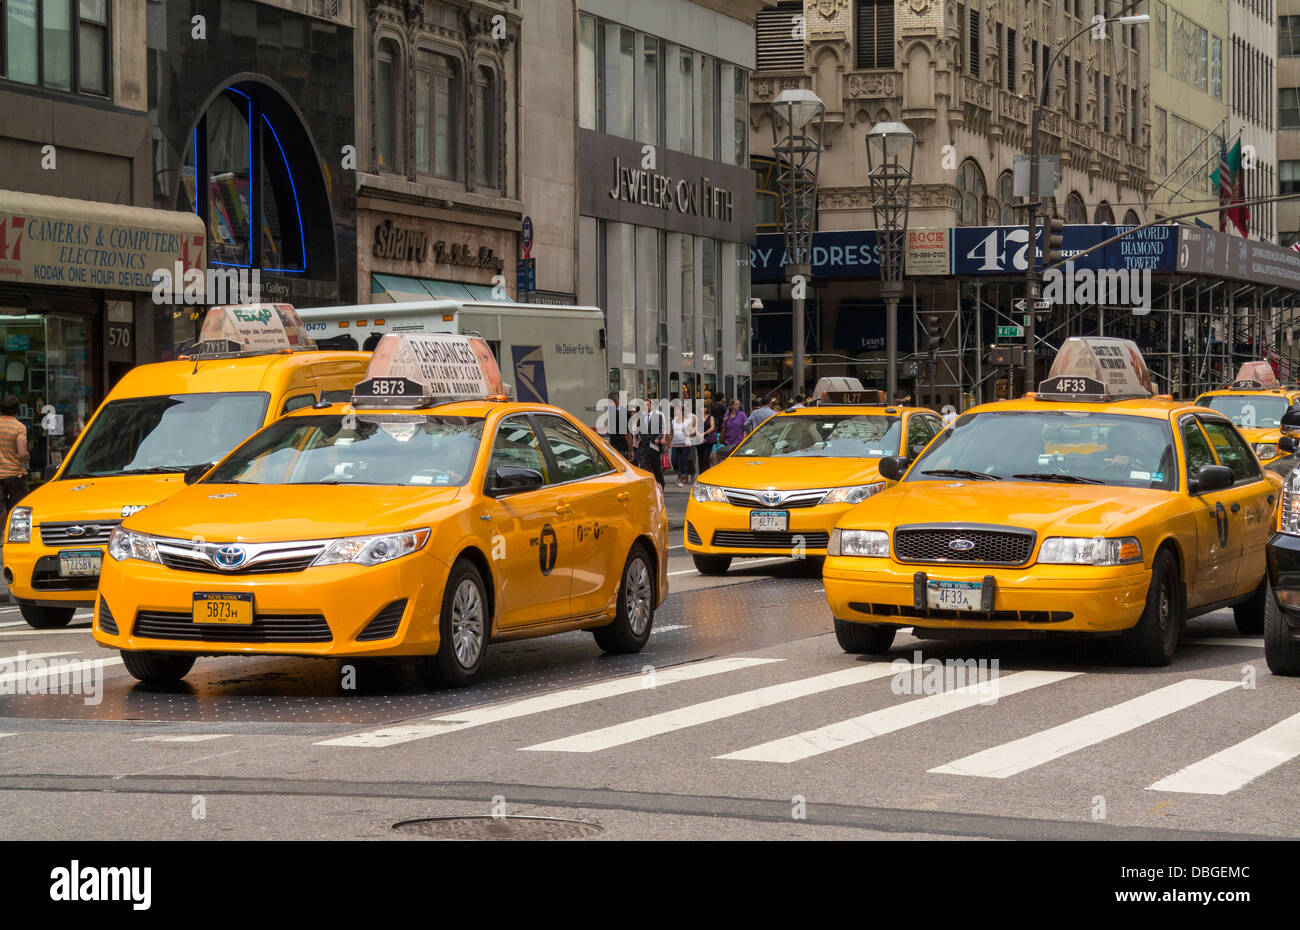 Group of New York taxi cabs at a New York City street junction - Stock Image